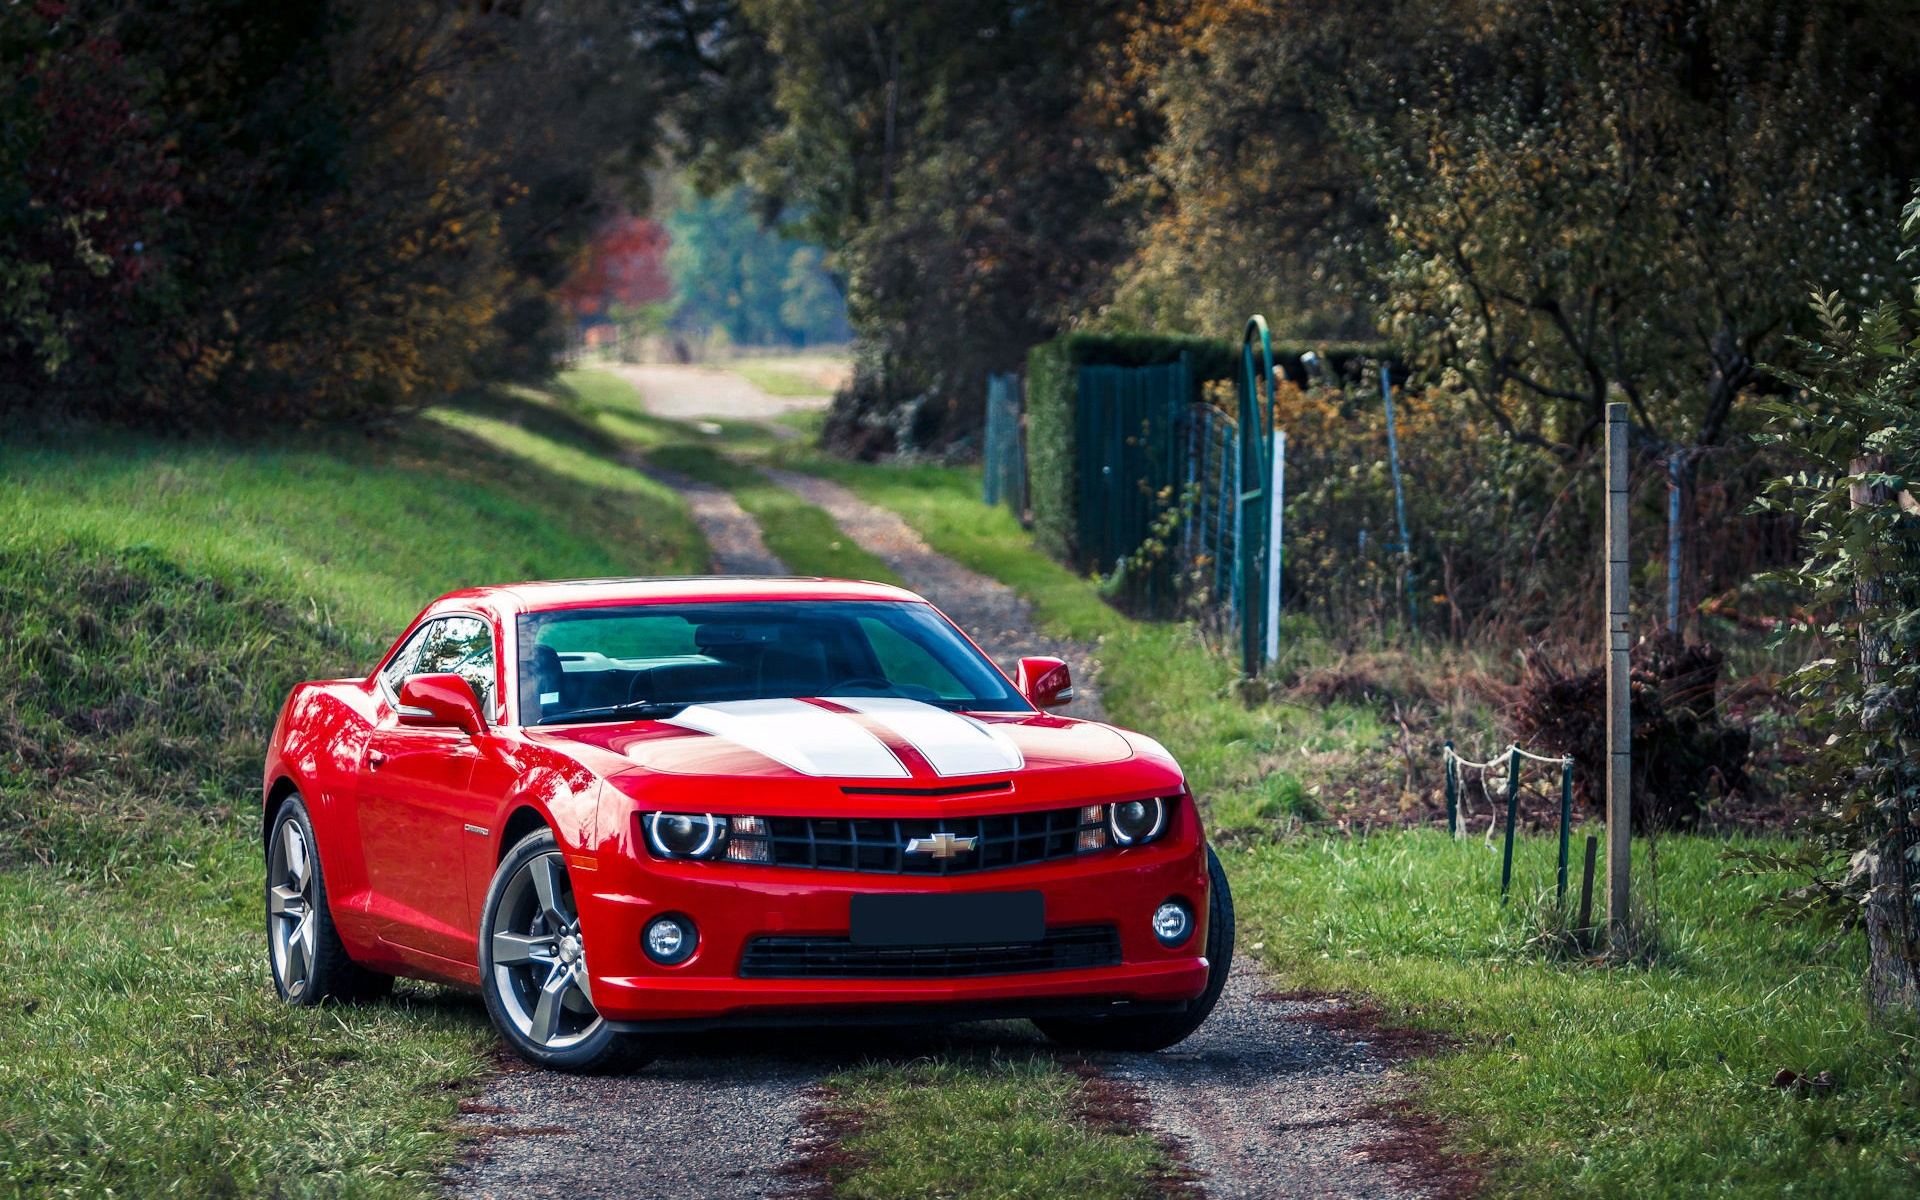 Wallpaper Red Chevrolet Camaro Muscle Car 1920x1200 HD Picture Image